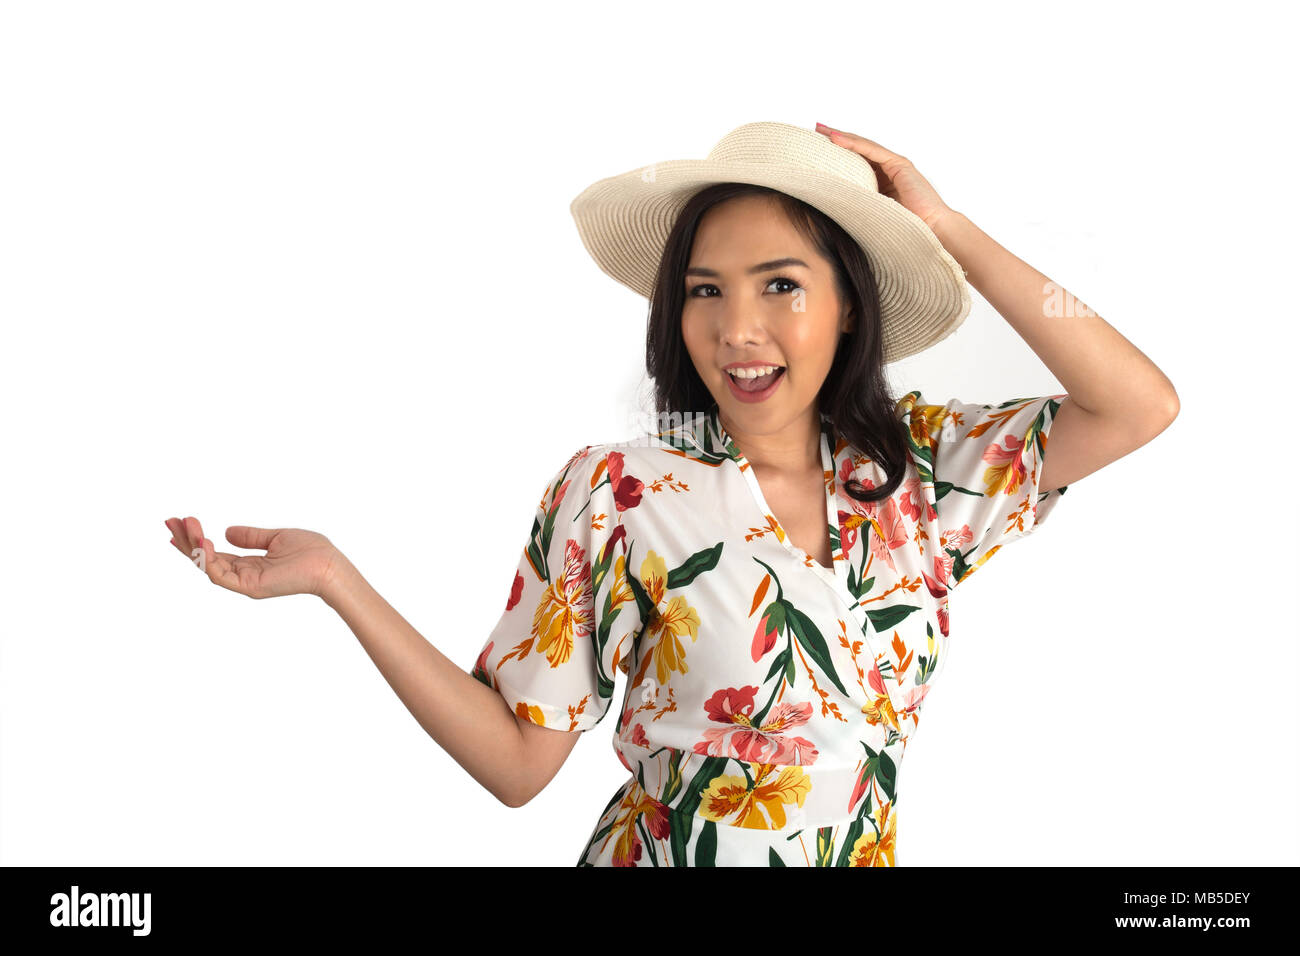 9d8afaed Half shot photo of pretty girl wearing floral dress put one hand on white  straw hat in studio. Yunyong Ampawa / Alamy Stock Photo